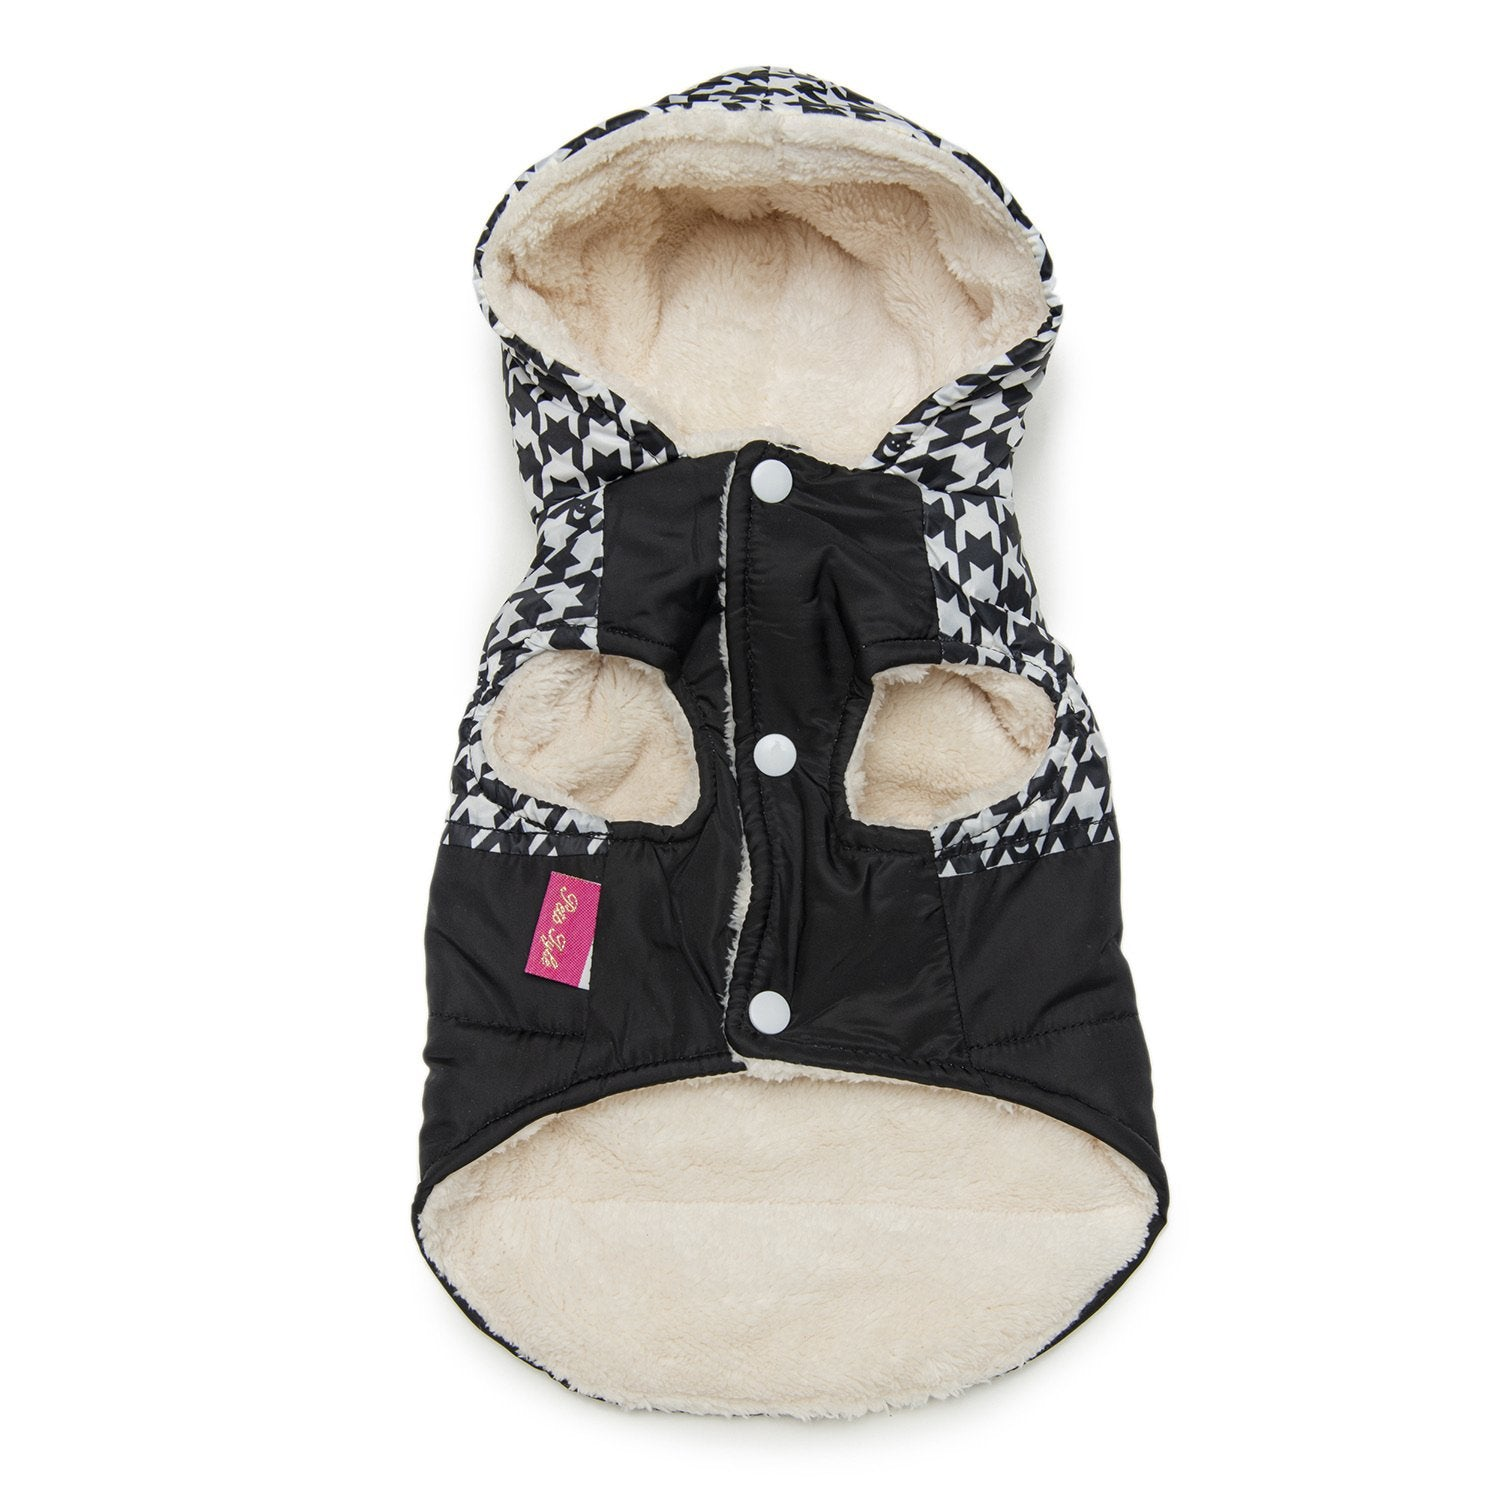 Posh Puppy Hooded Vest